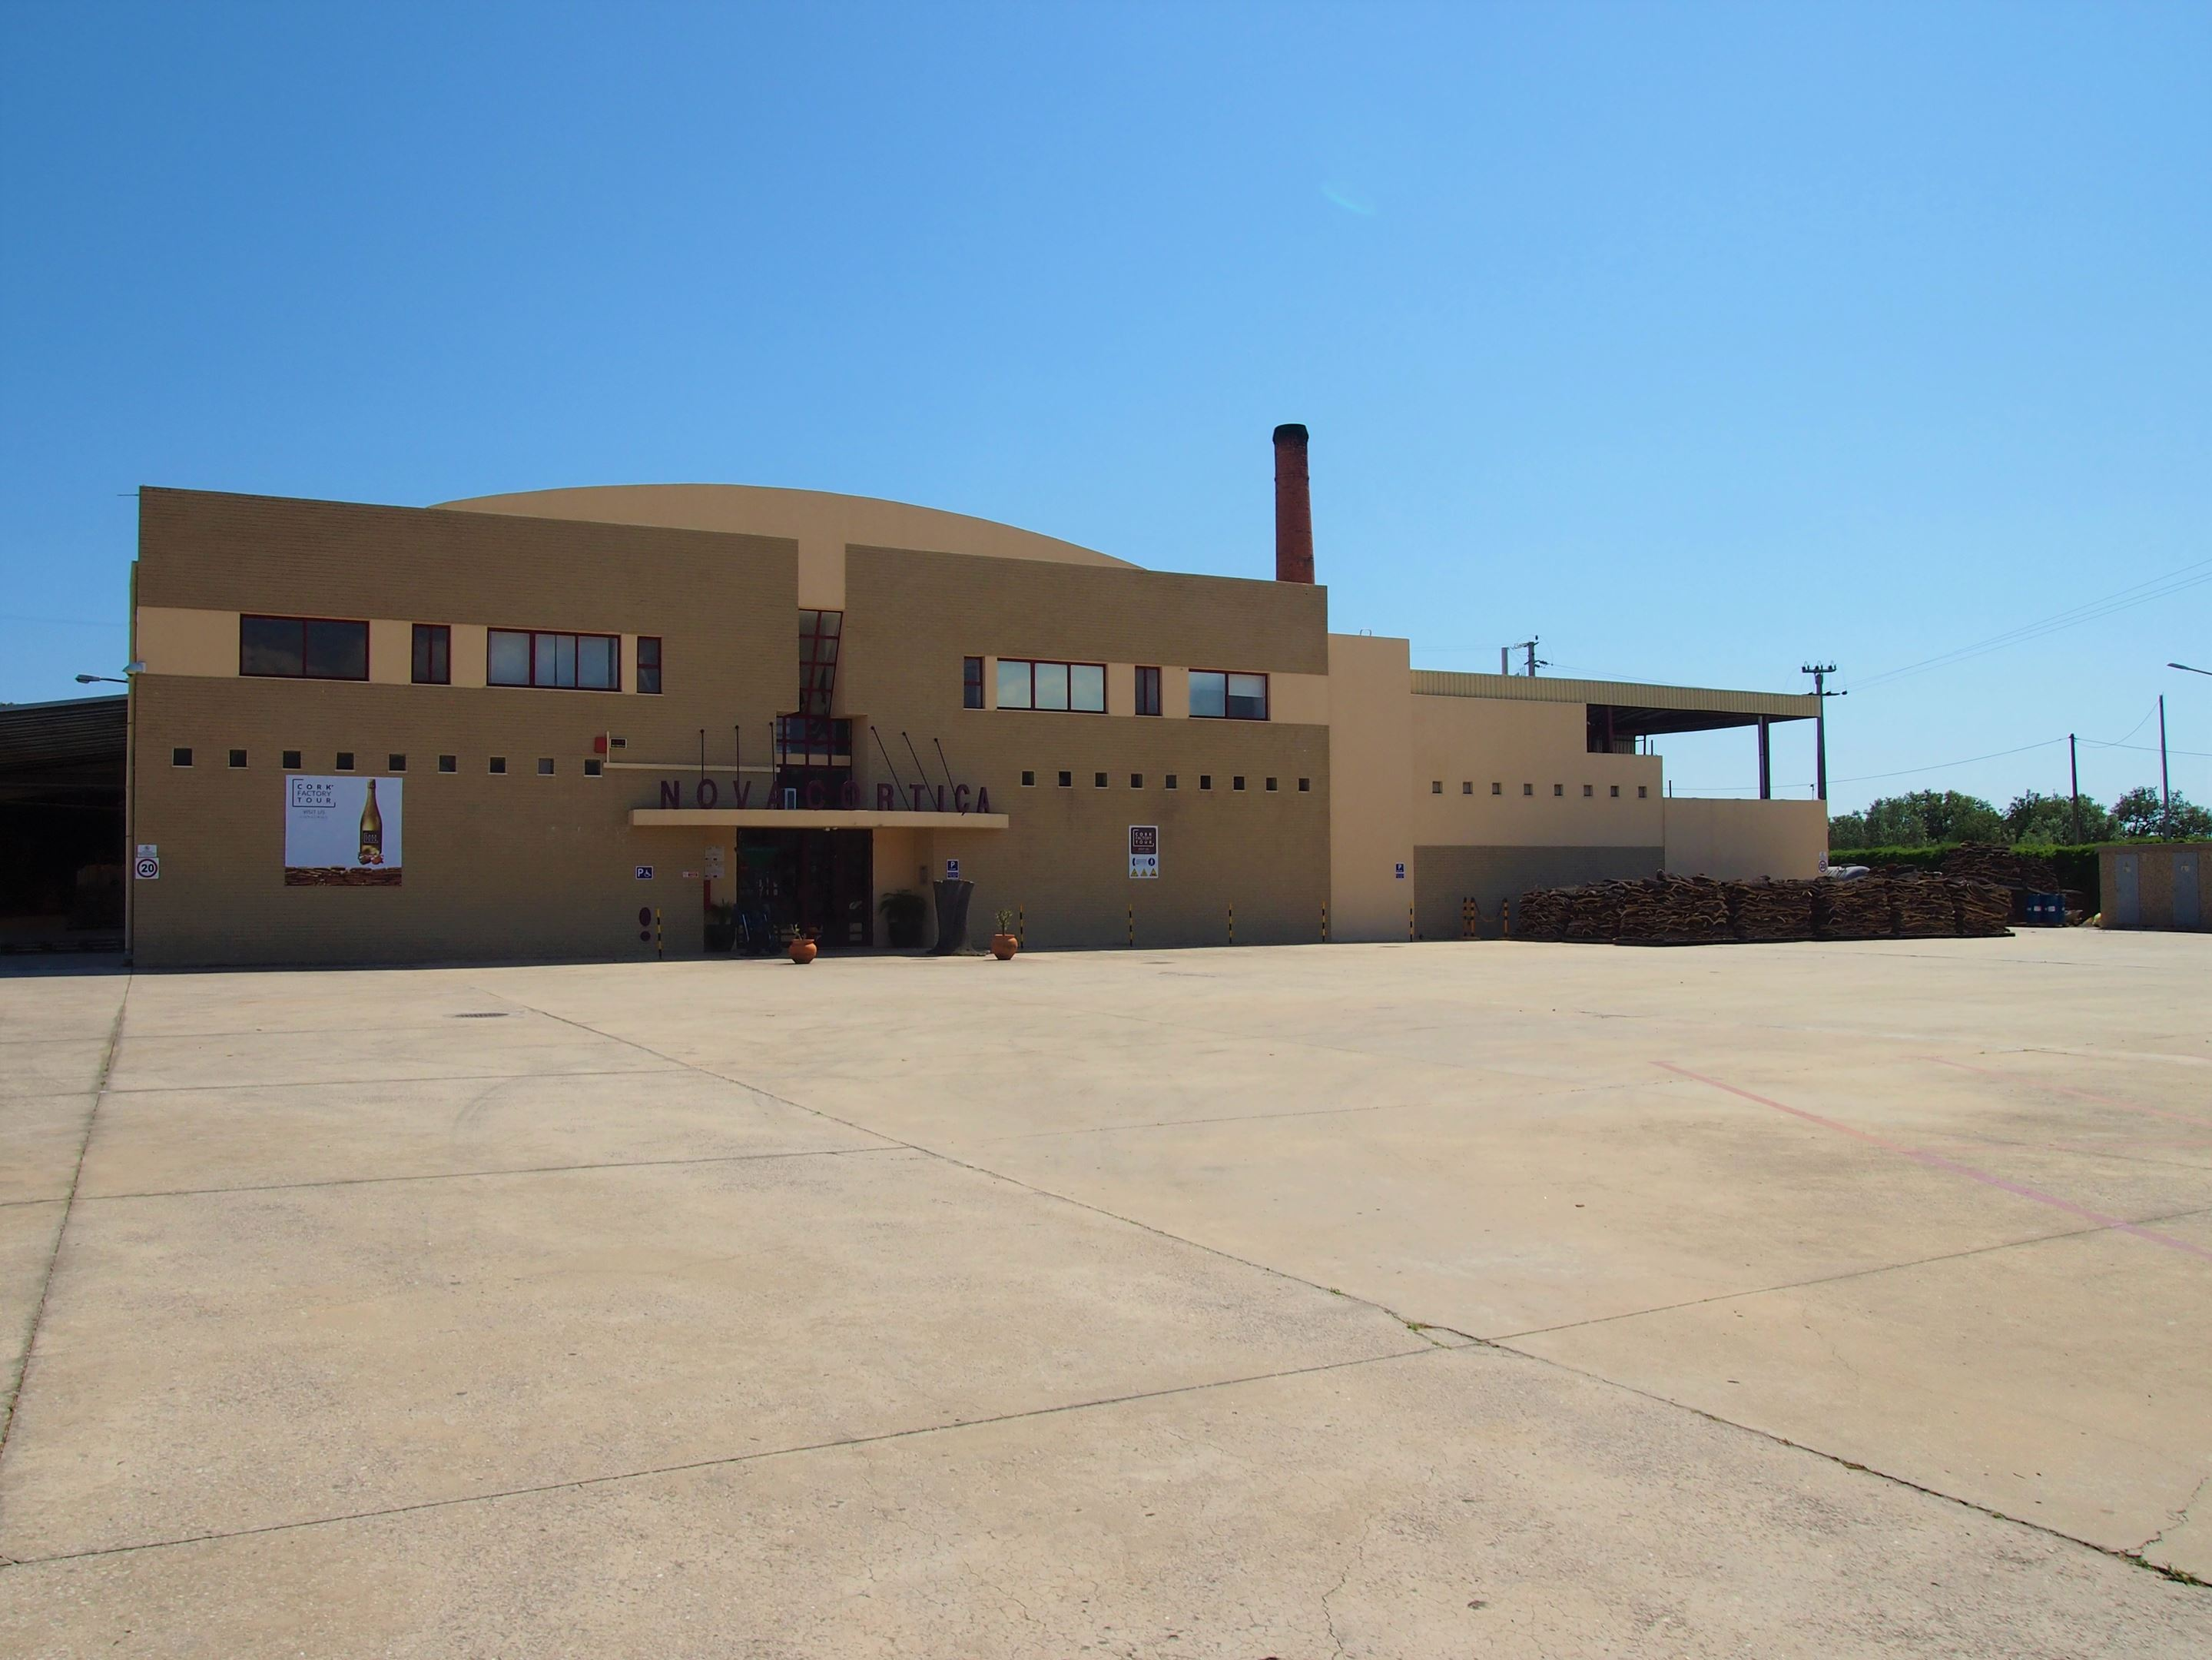 The Novacortiça factory in São Brás de Alportel. Book a tour and learn about the history and uses of cork